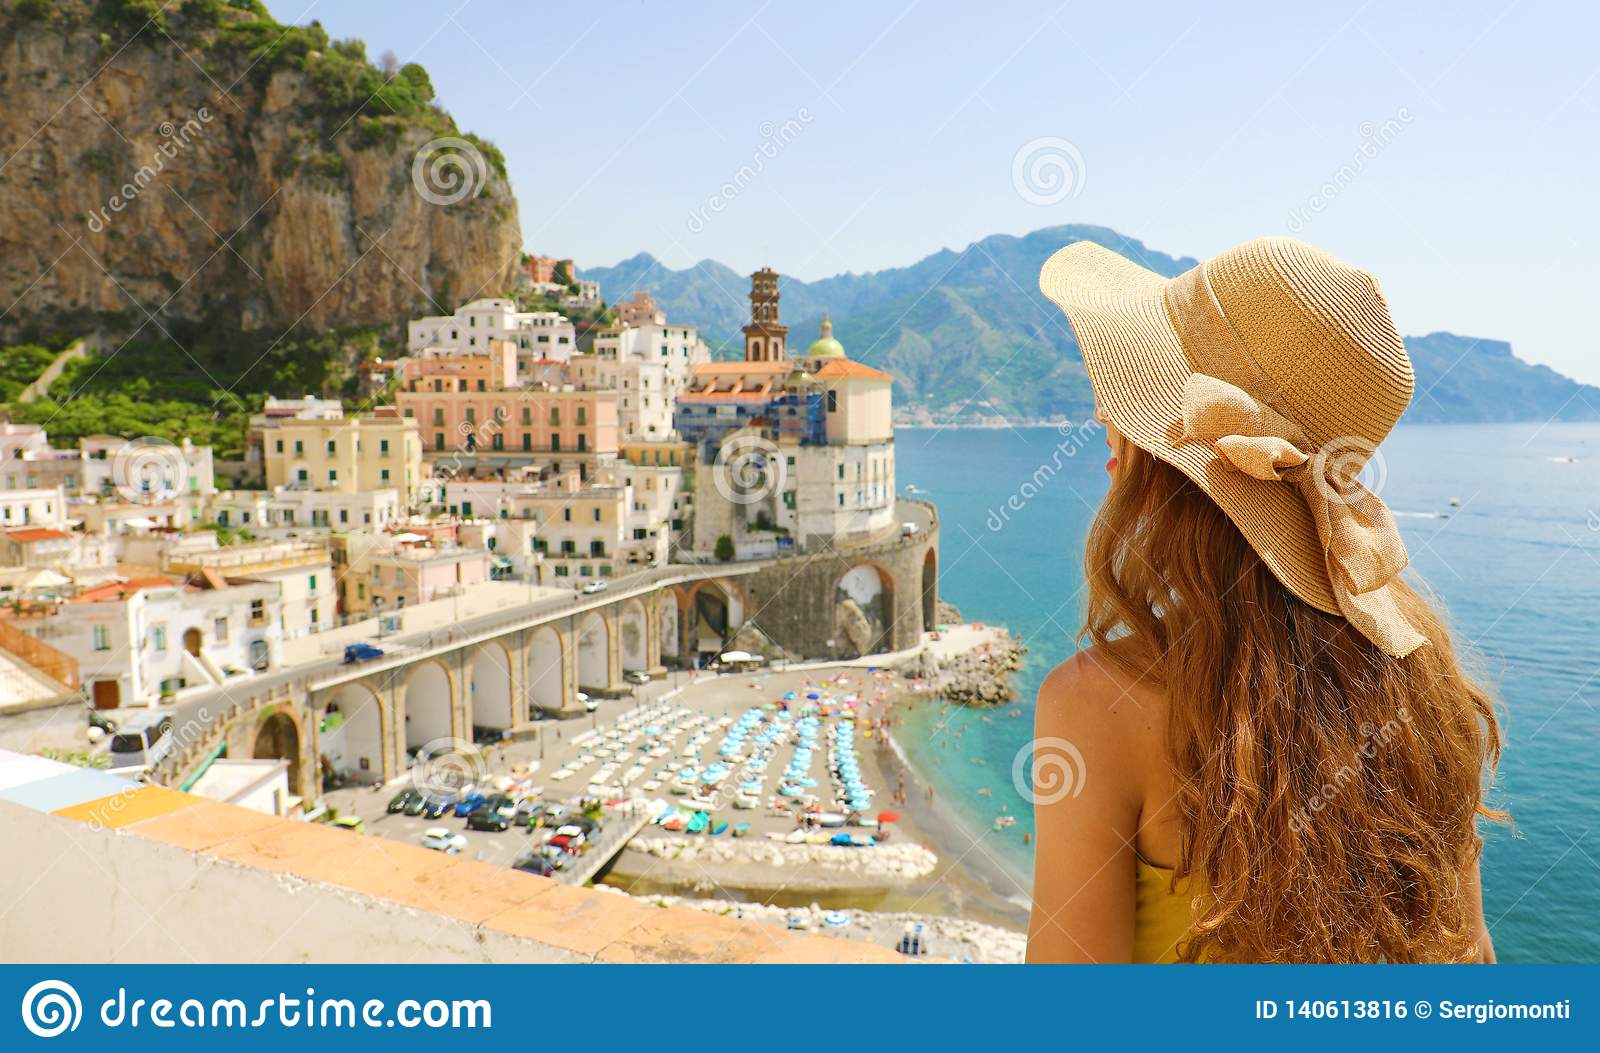 Summer holiday in Italy. Back view of young woman with straw hat and yellow dress with Atrani village on the background, Amalfi